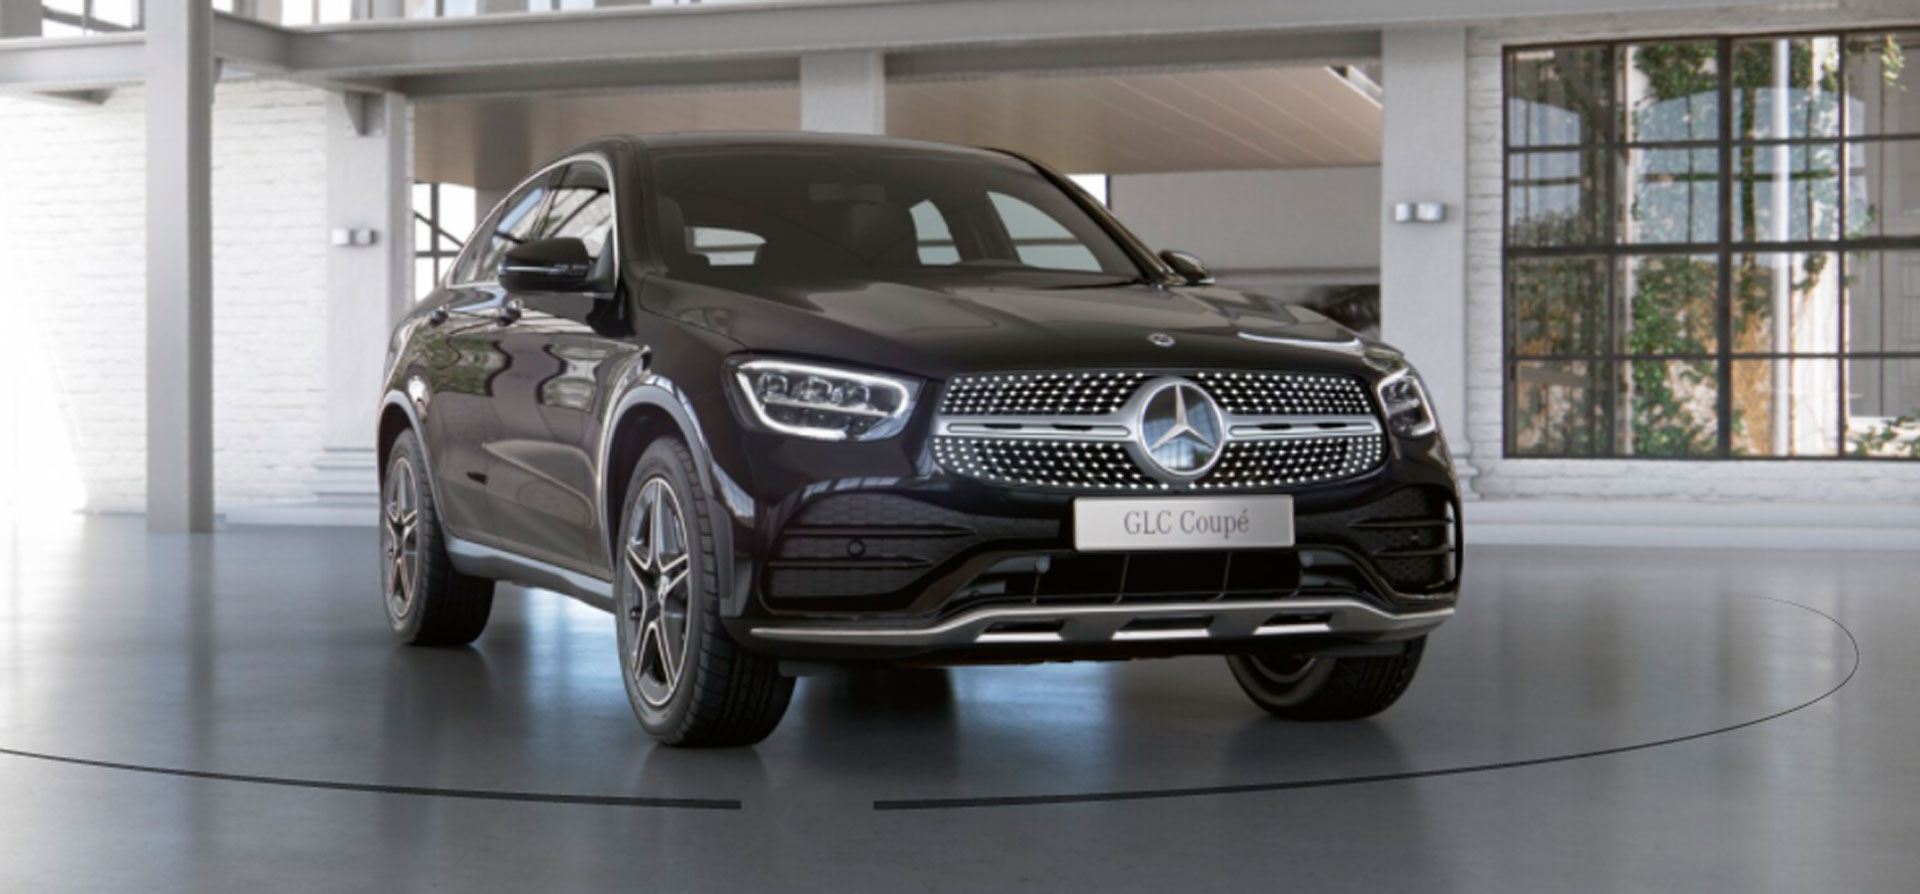 Mercedes-Benz GLC Coupe 0152607053